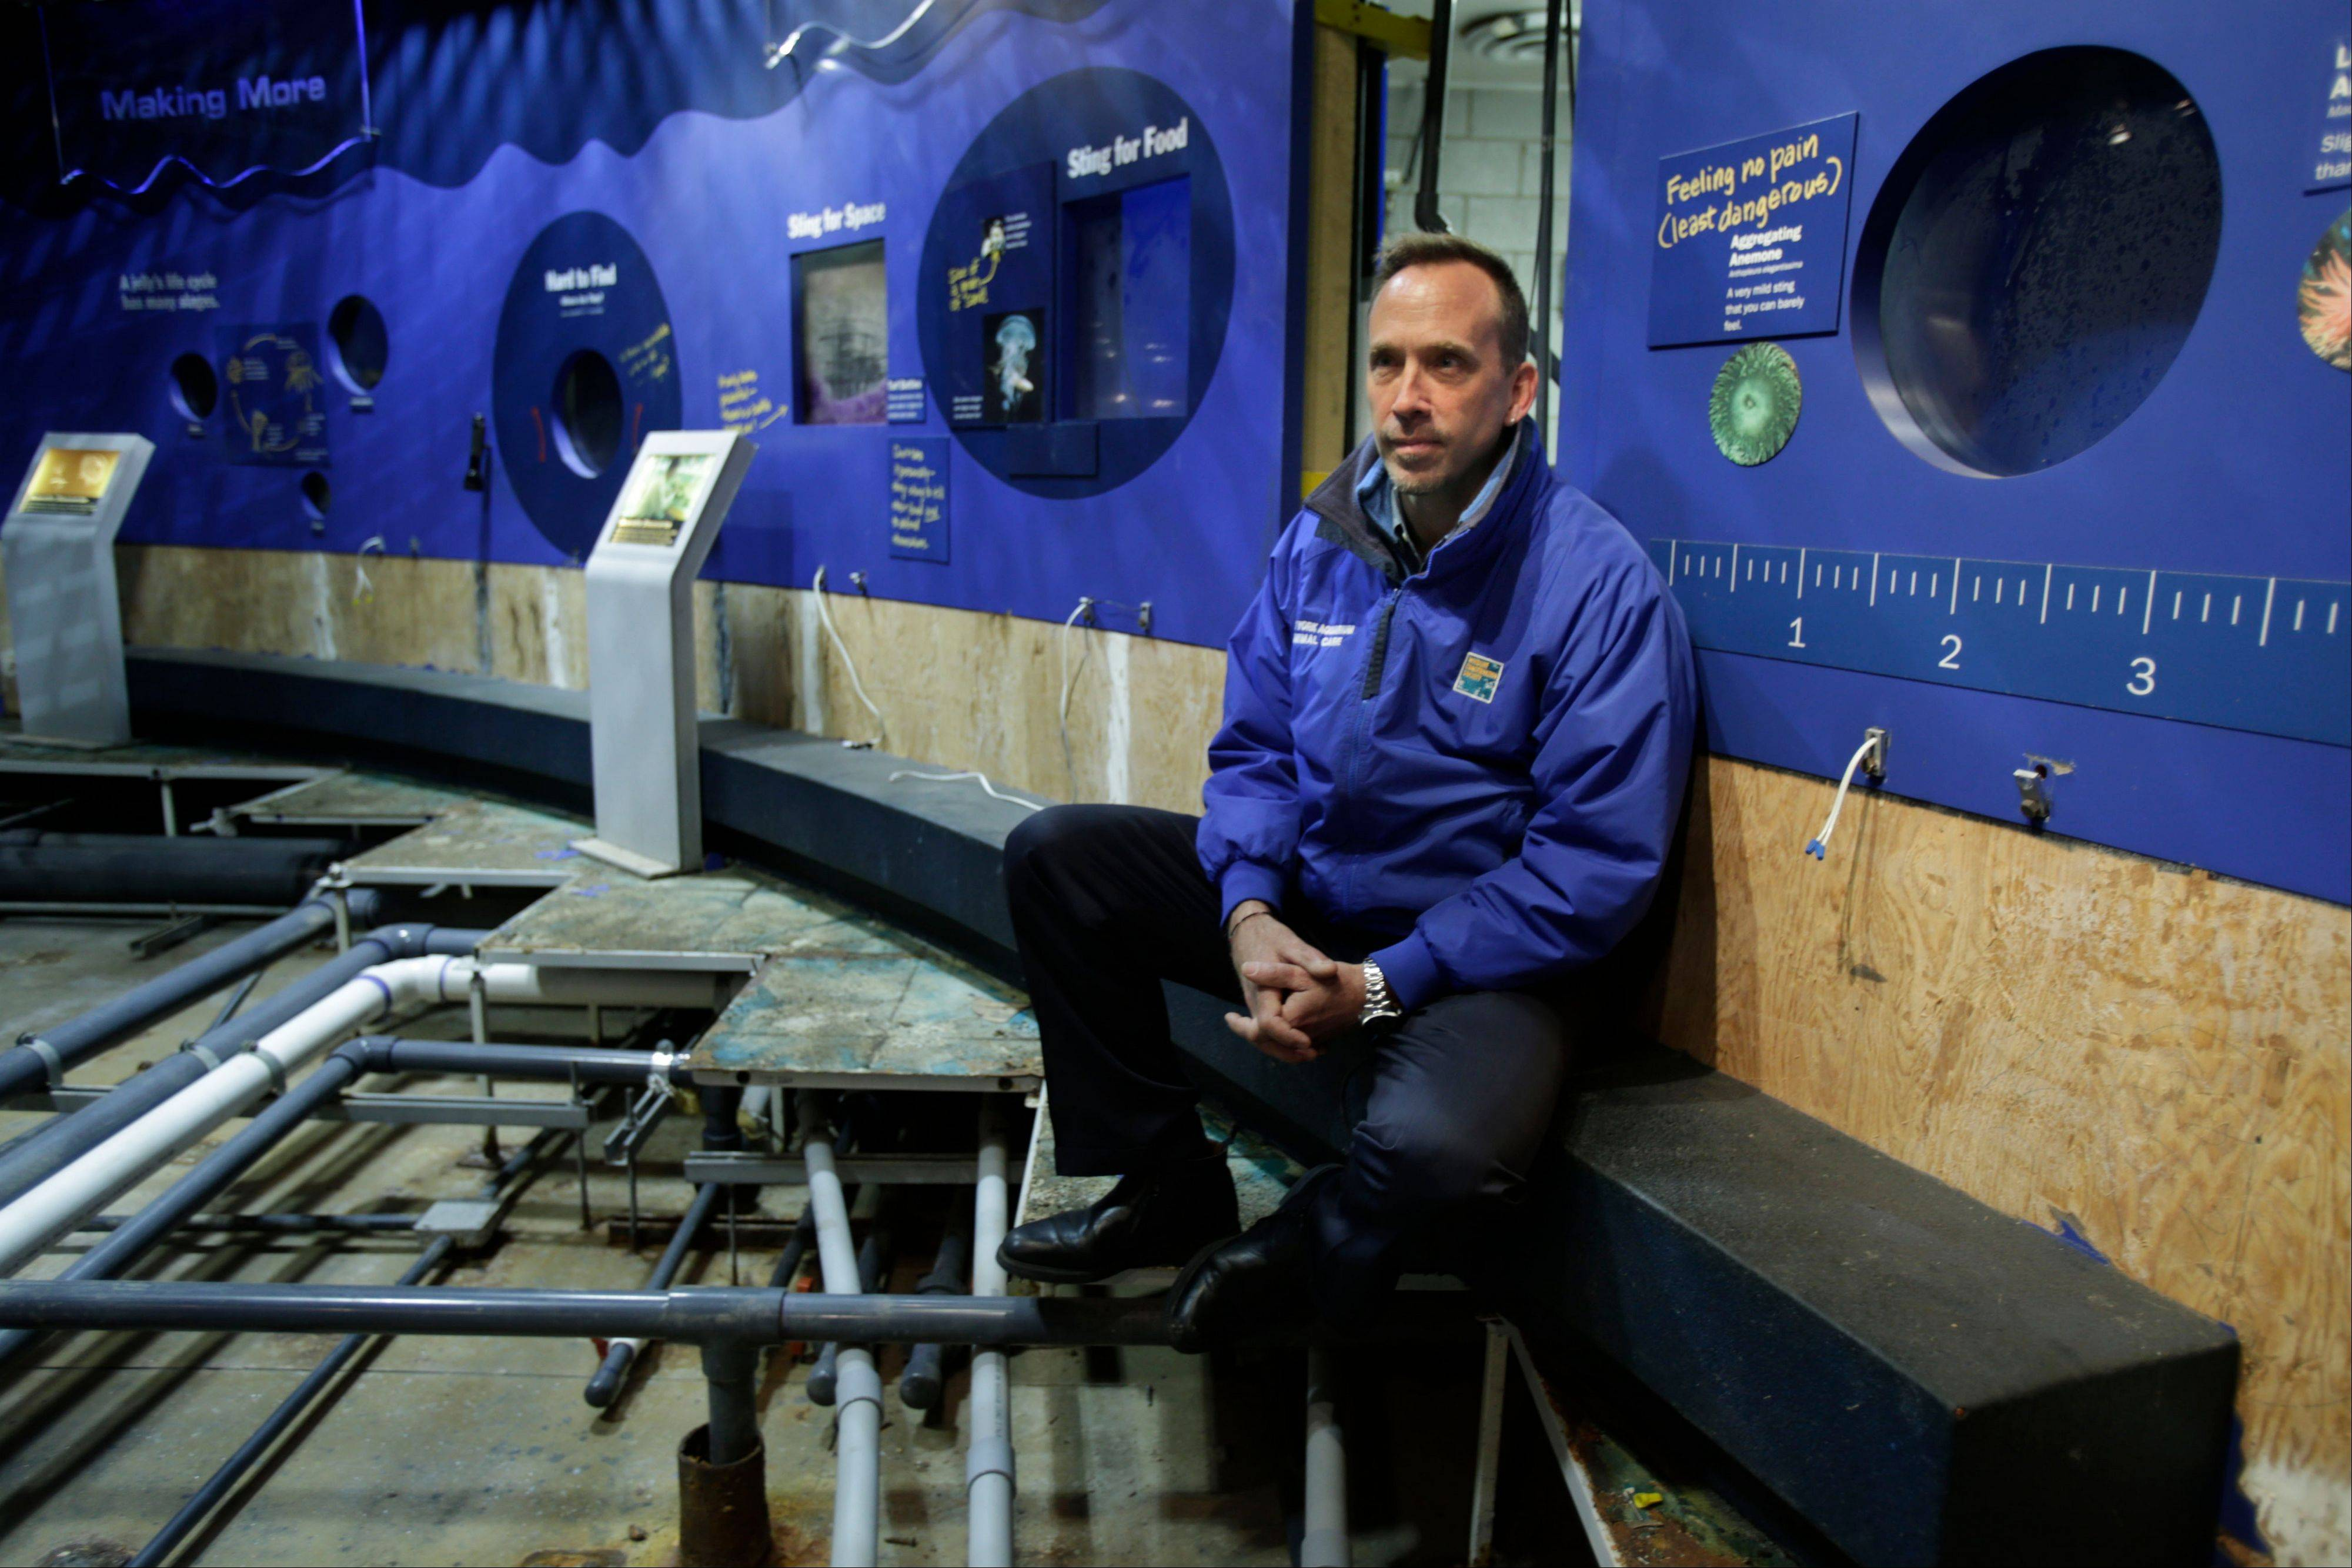 Director of the New York Aquarium, John Dohlin at an exhibit ruined during Superstorm Sandy at the aquarium on Coney Island.